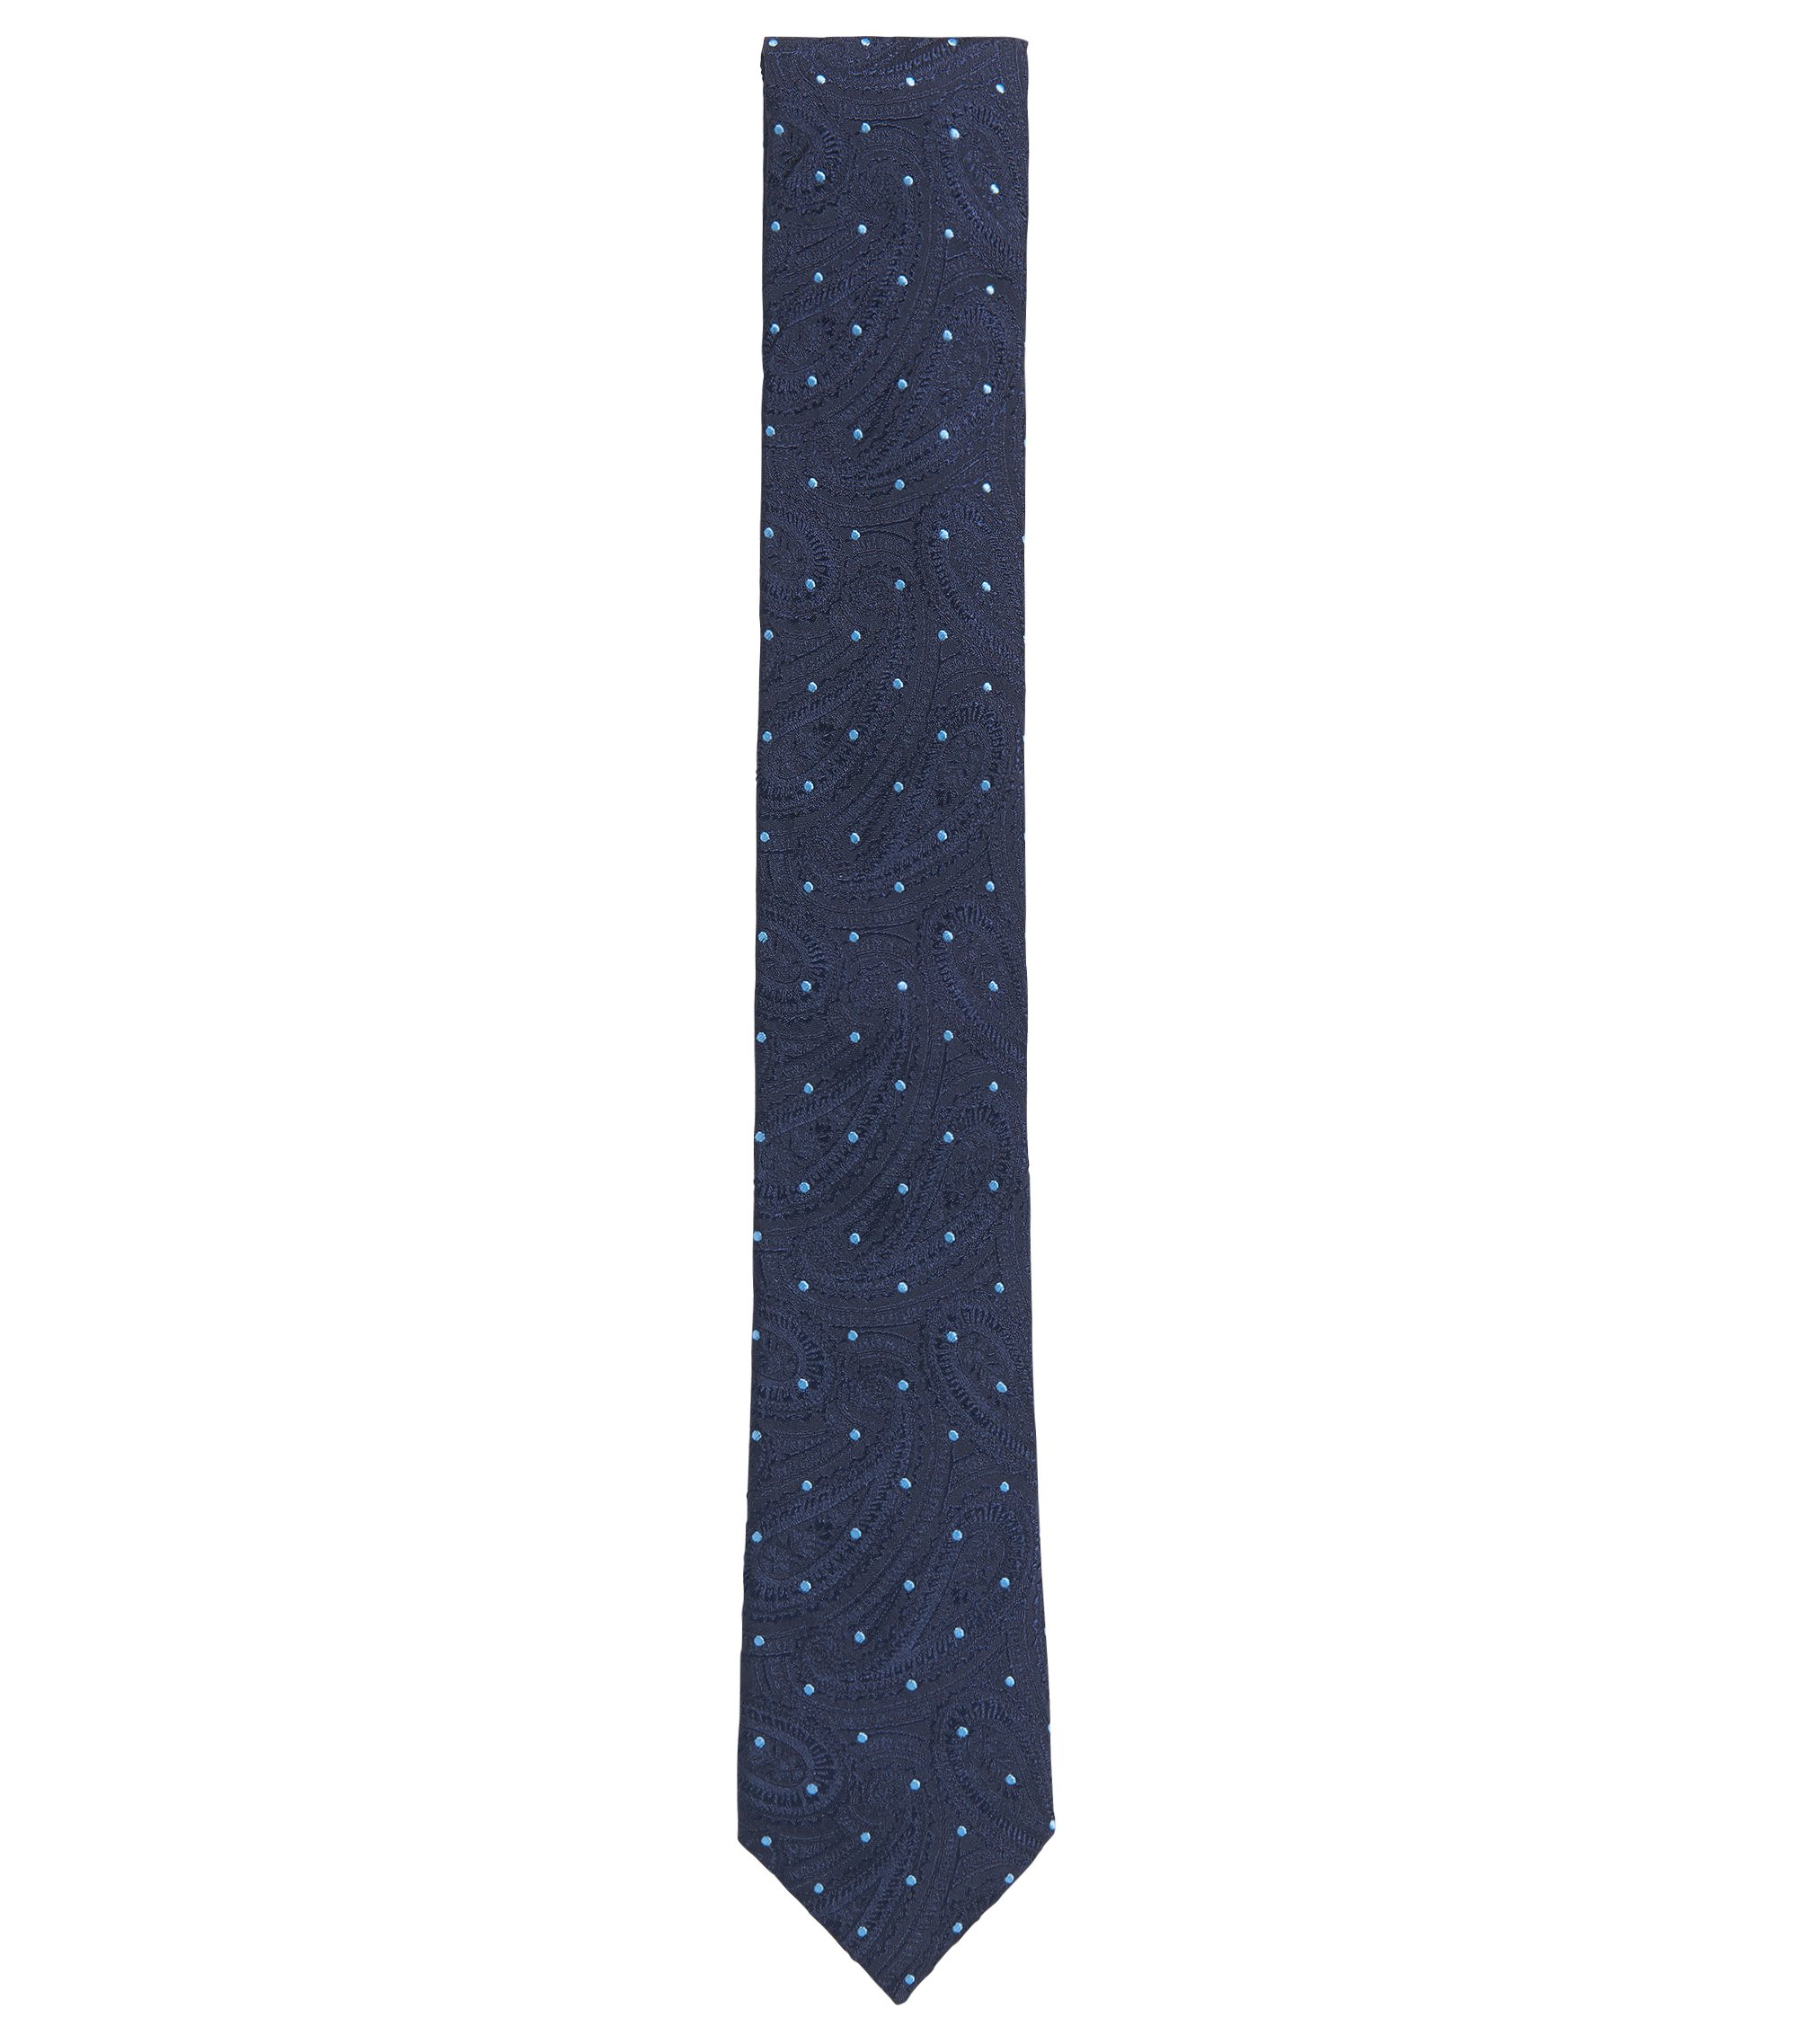 Silk-jacquard patterned tie made in Italy, Dark Blue